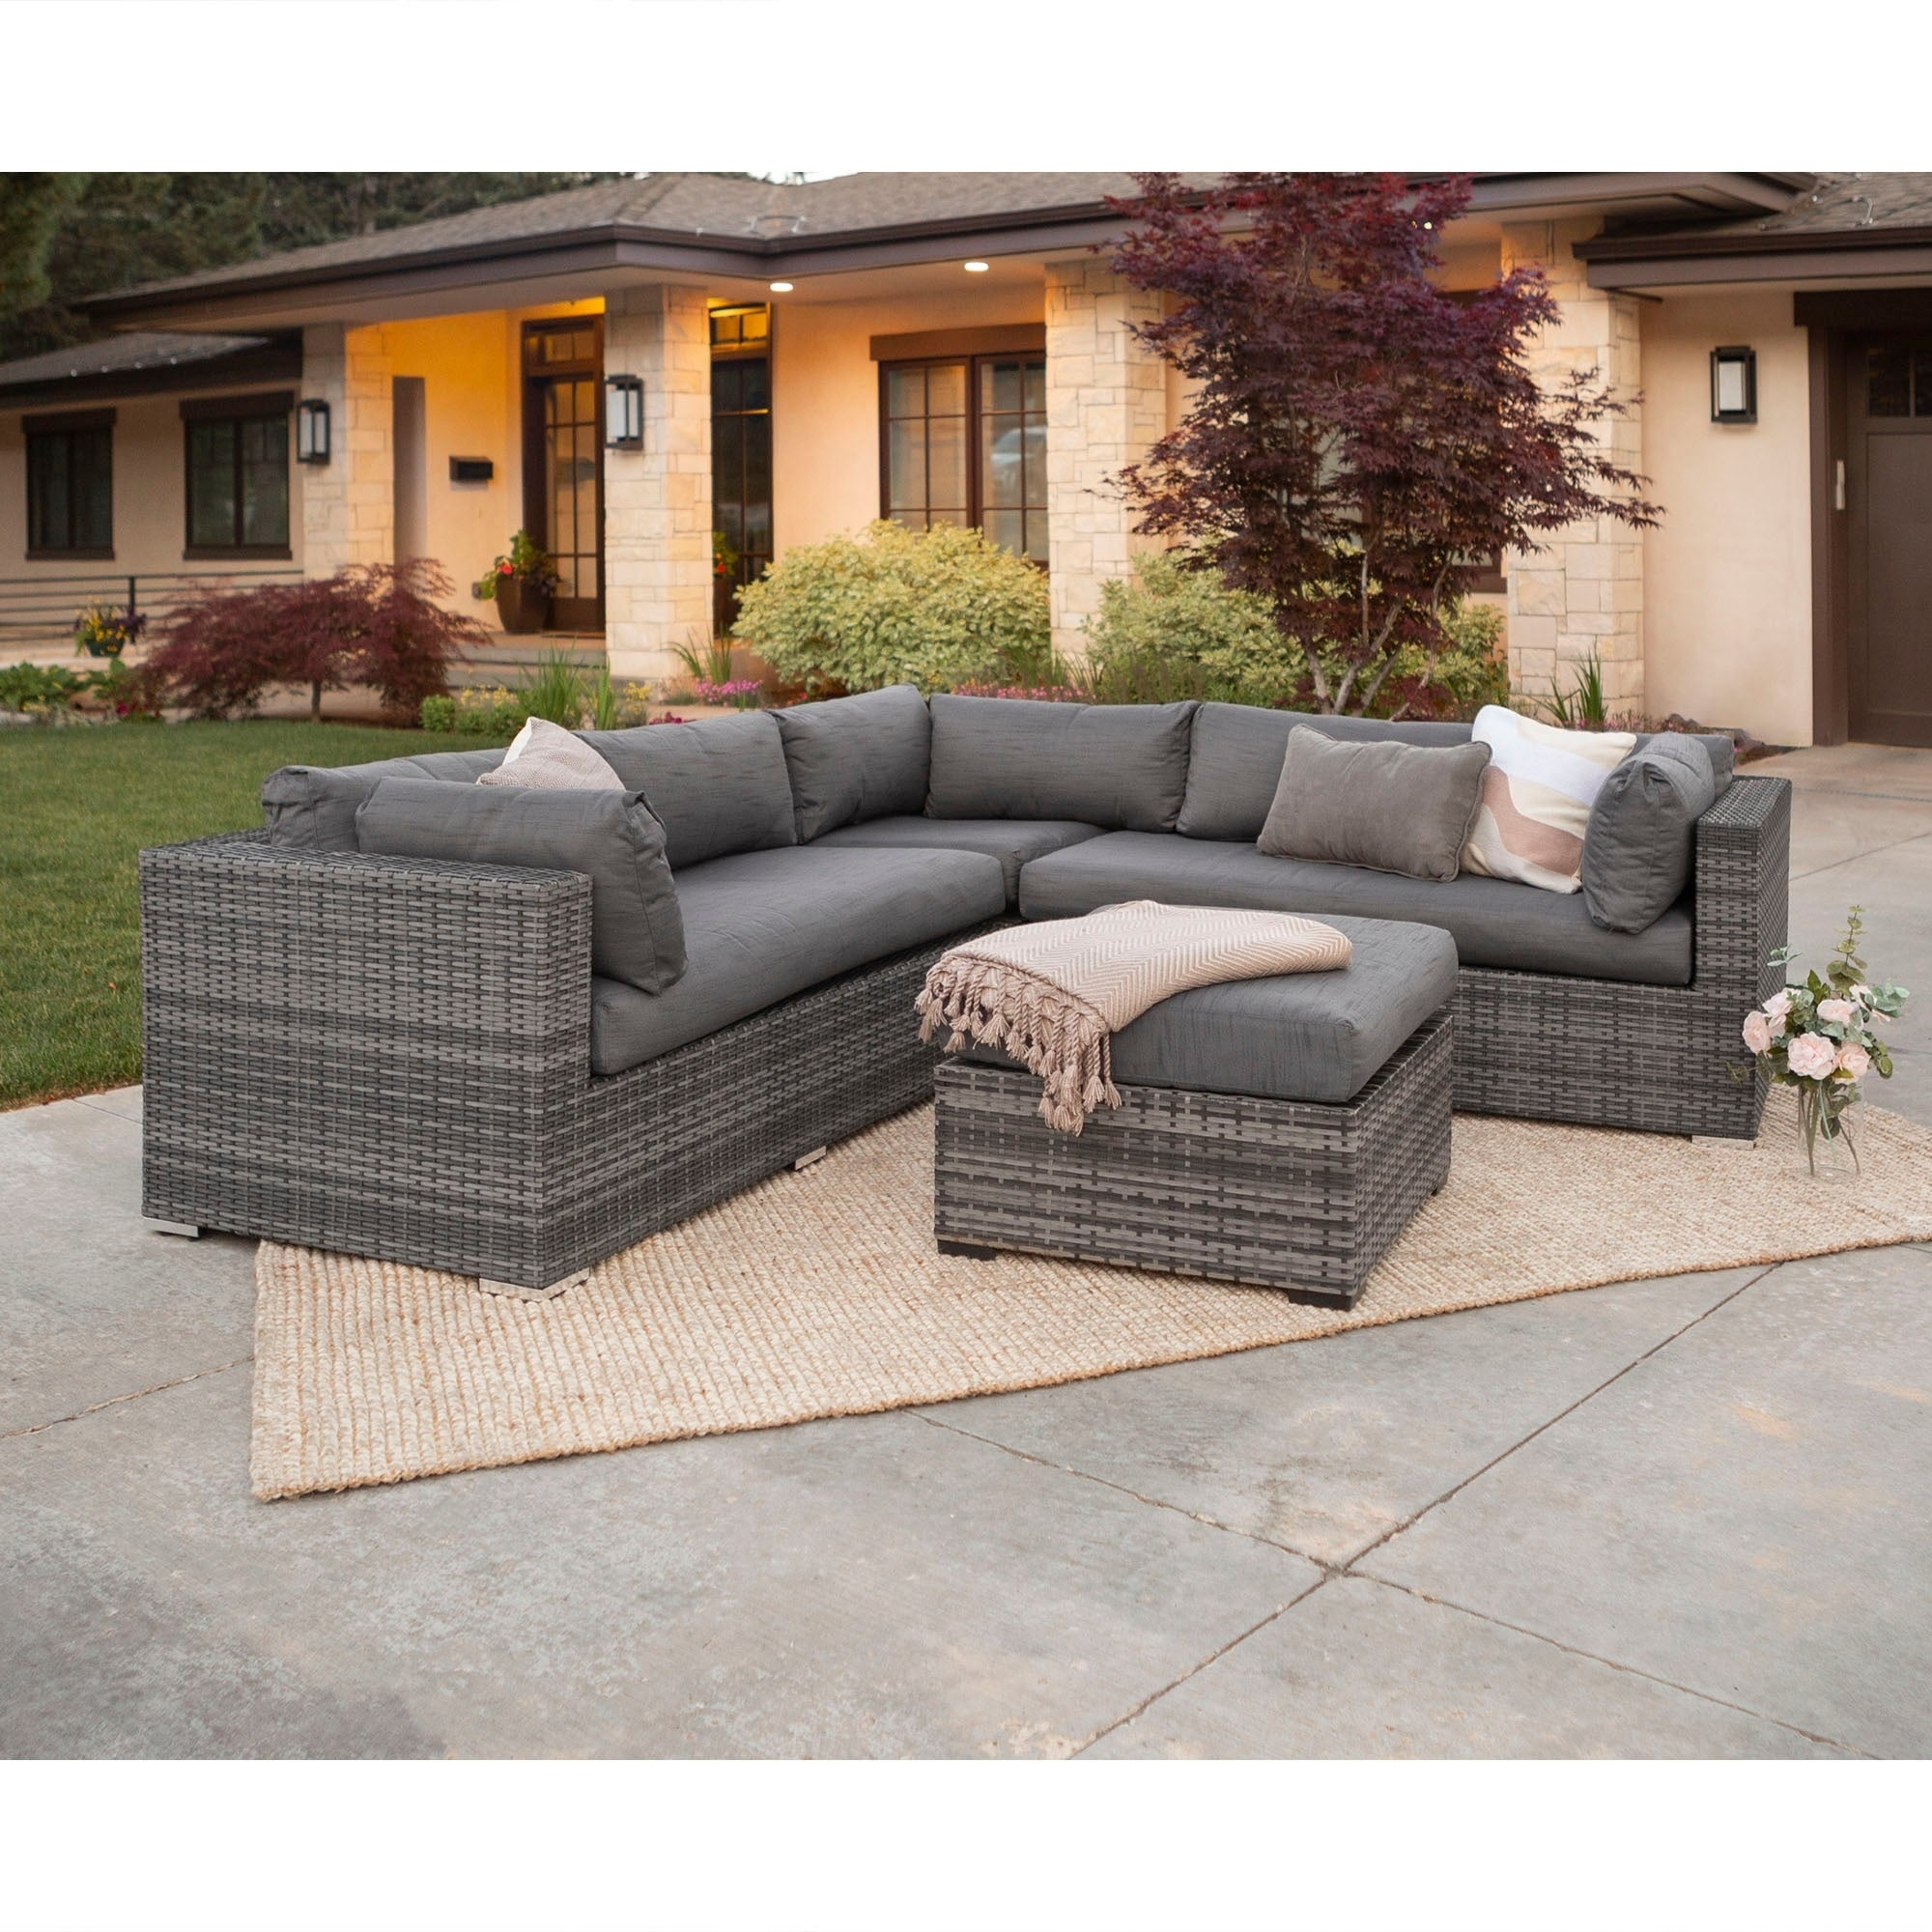 3 Piece Multi Shade Outdoor Sectional And Ottoman On Free Shipping Today 14595230